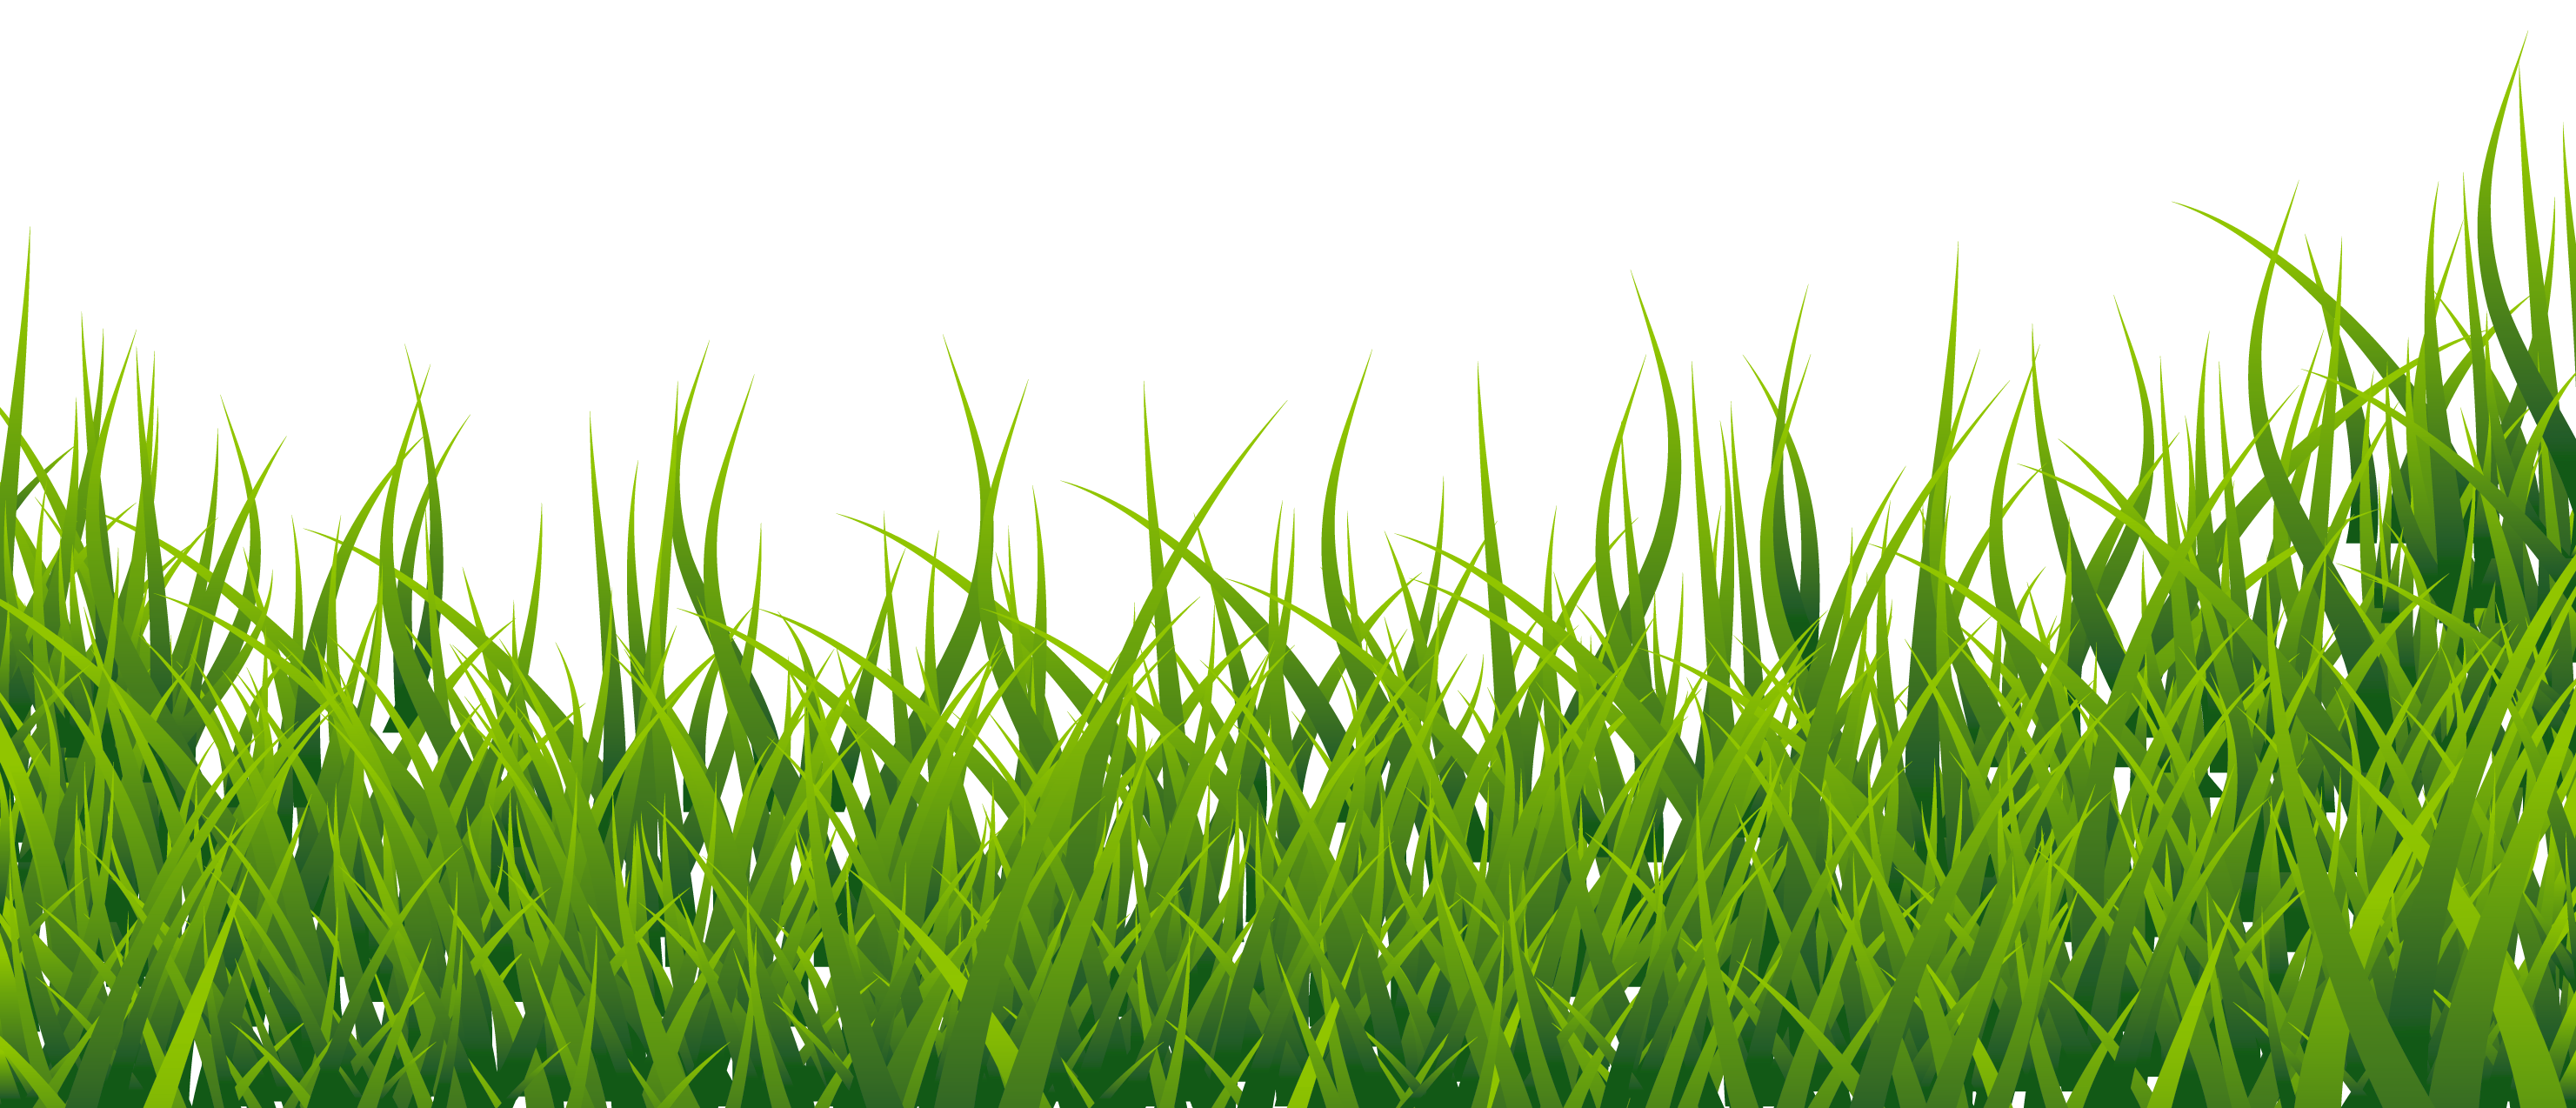 Grass  black and white grass clipart black and white free images 6 wikiclipart